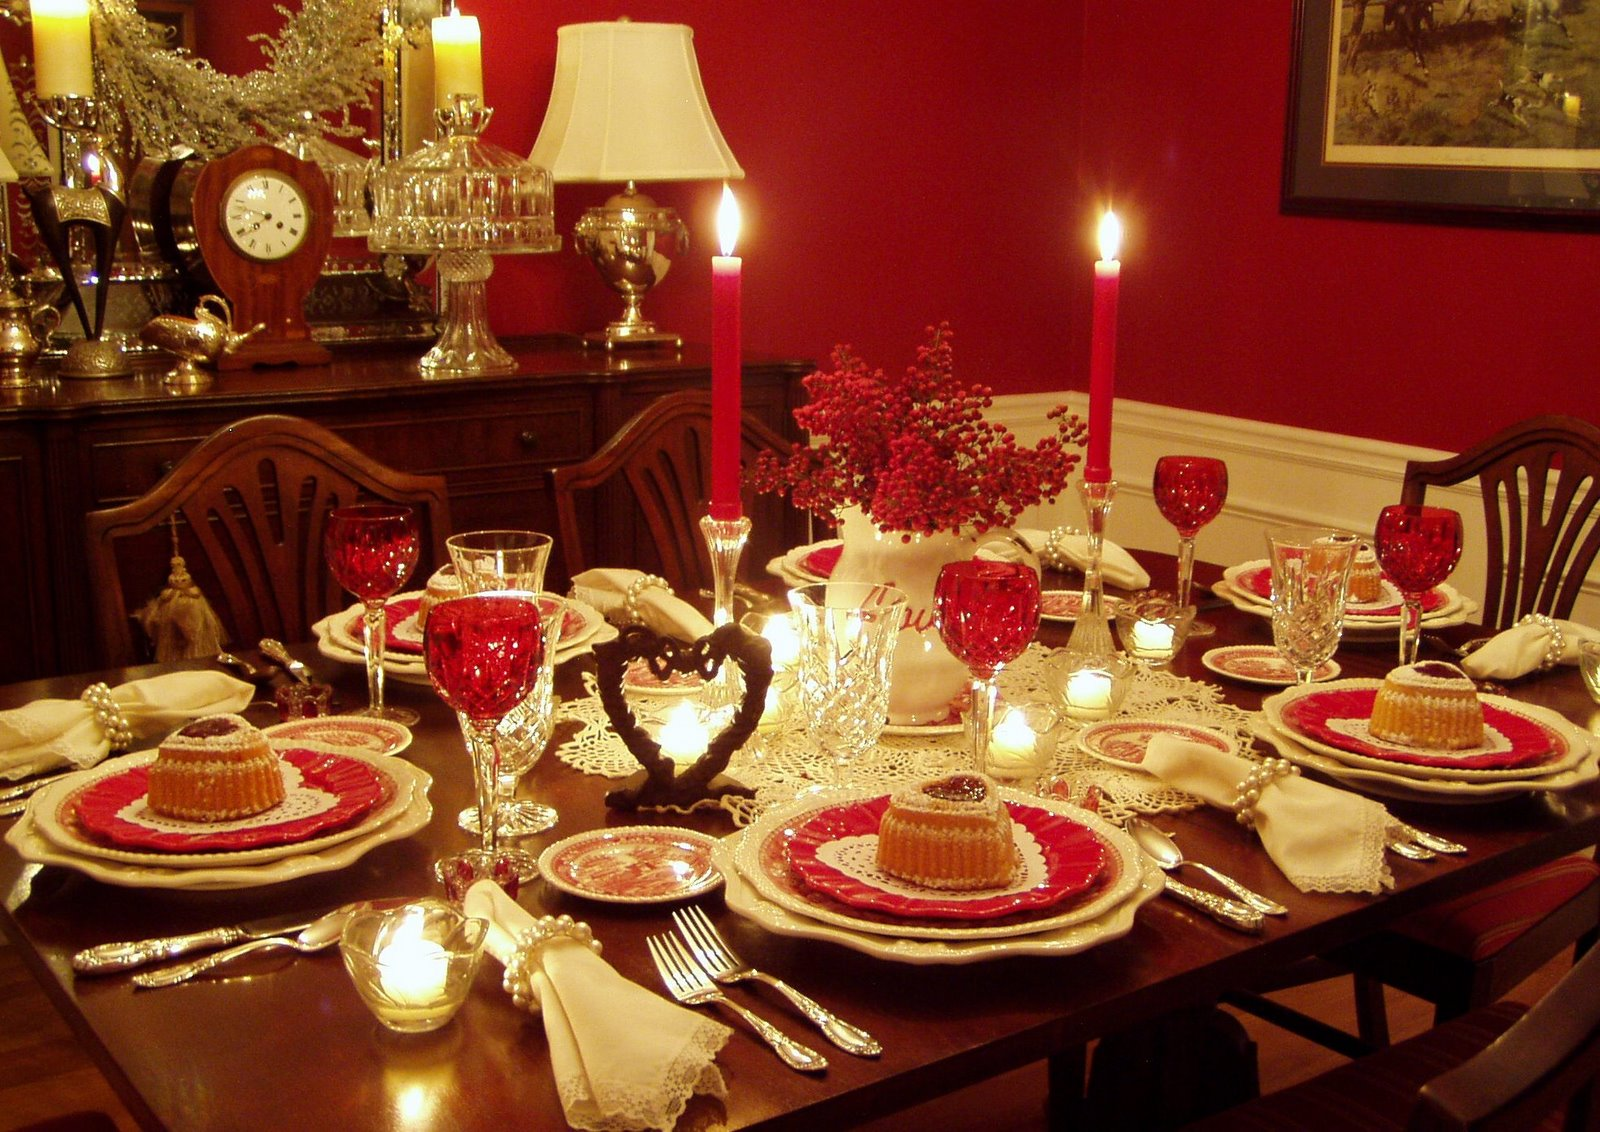 Romantic Valentines Day Tablescapes Table Settings With Heart Shaped Cakes